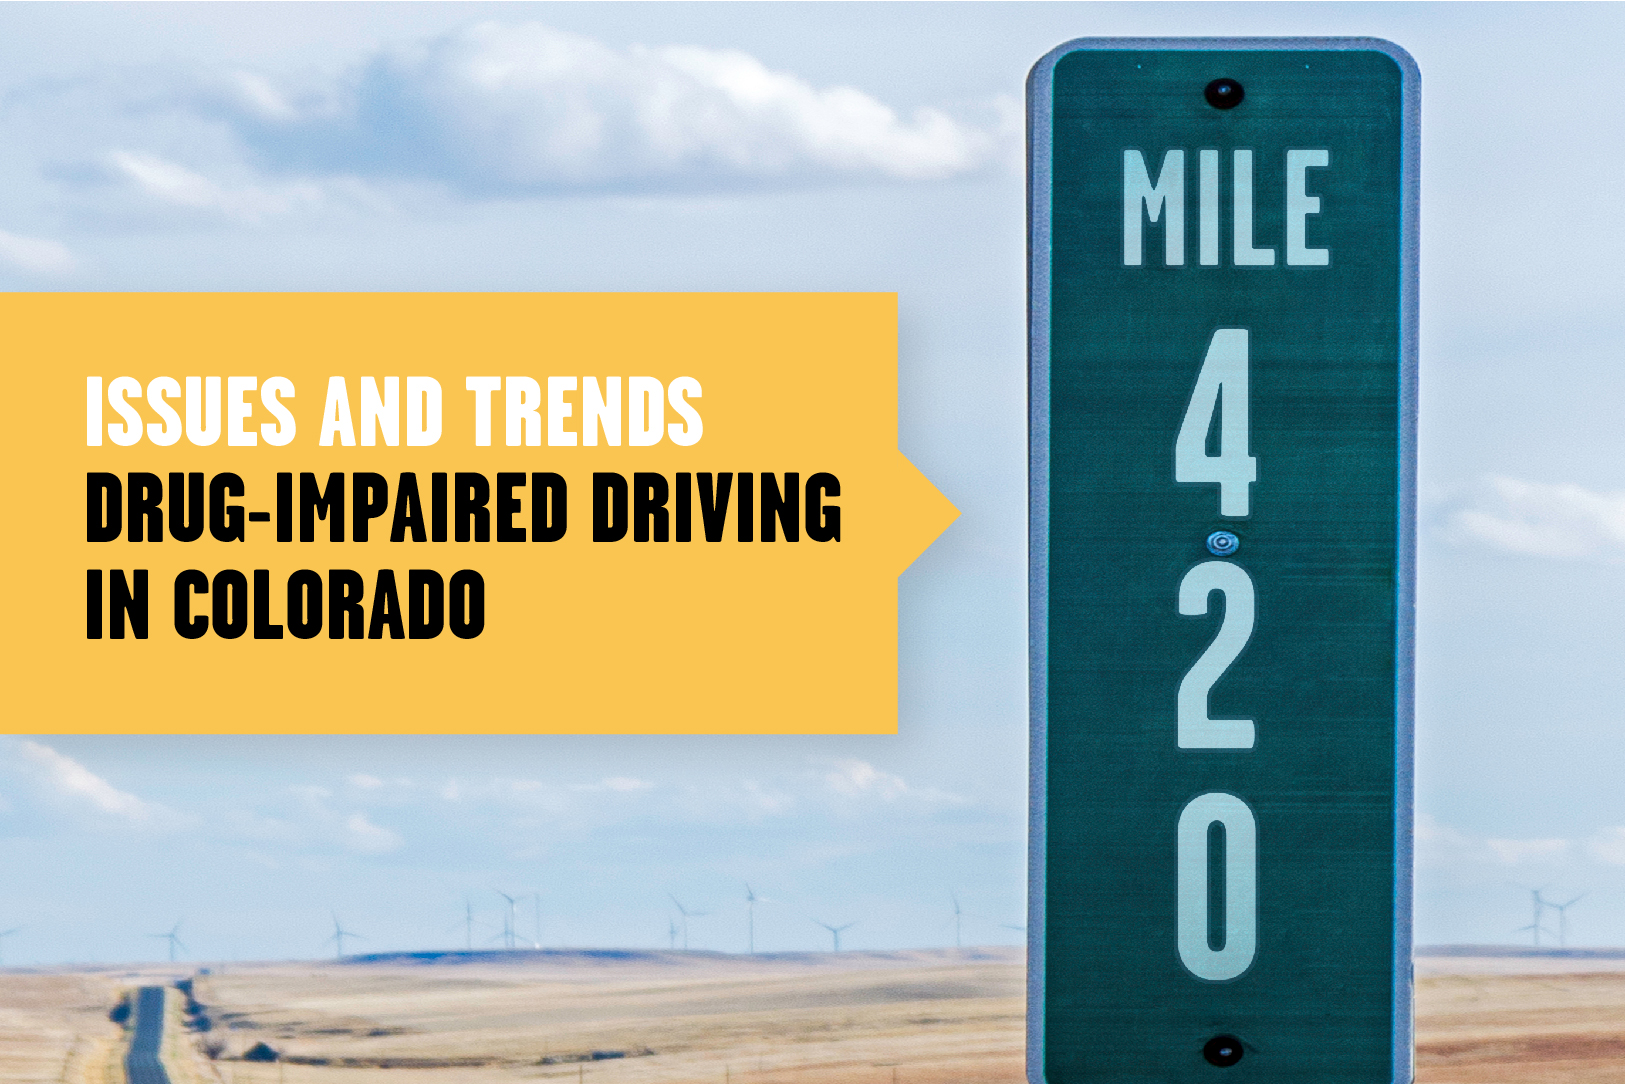 Issues and Trends on Drugged-Impaired driving in Colorado